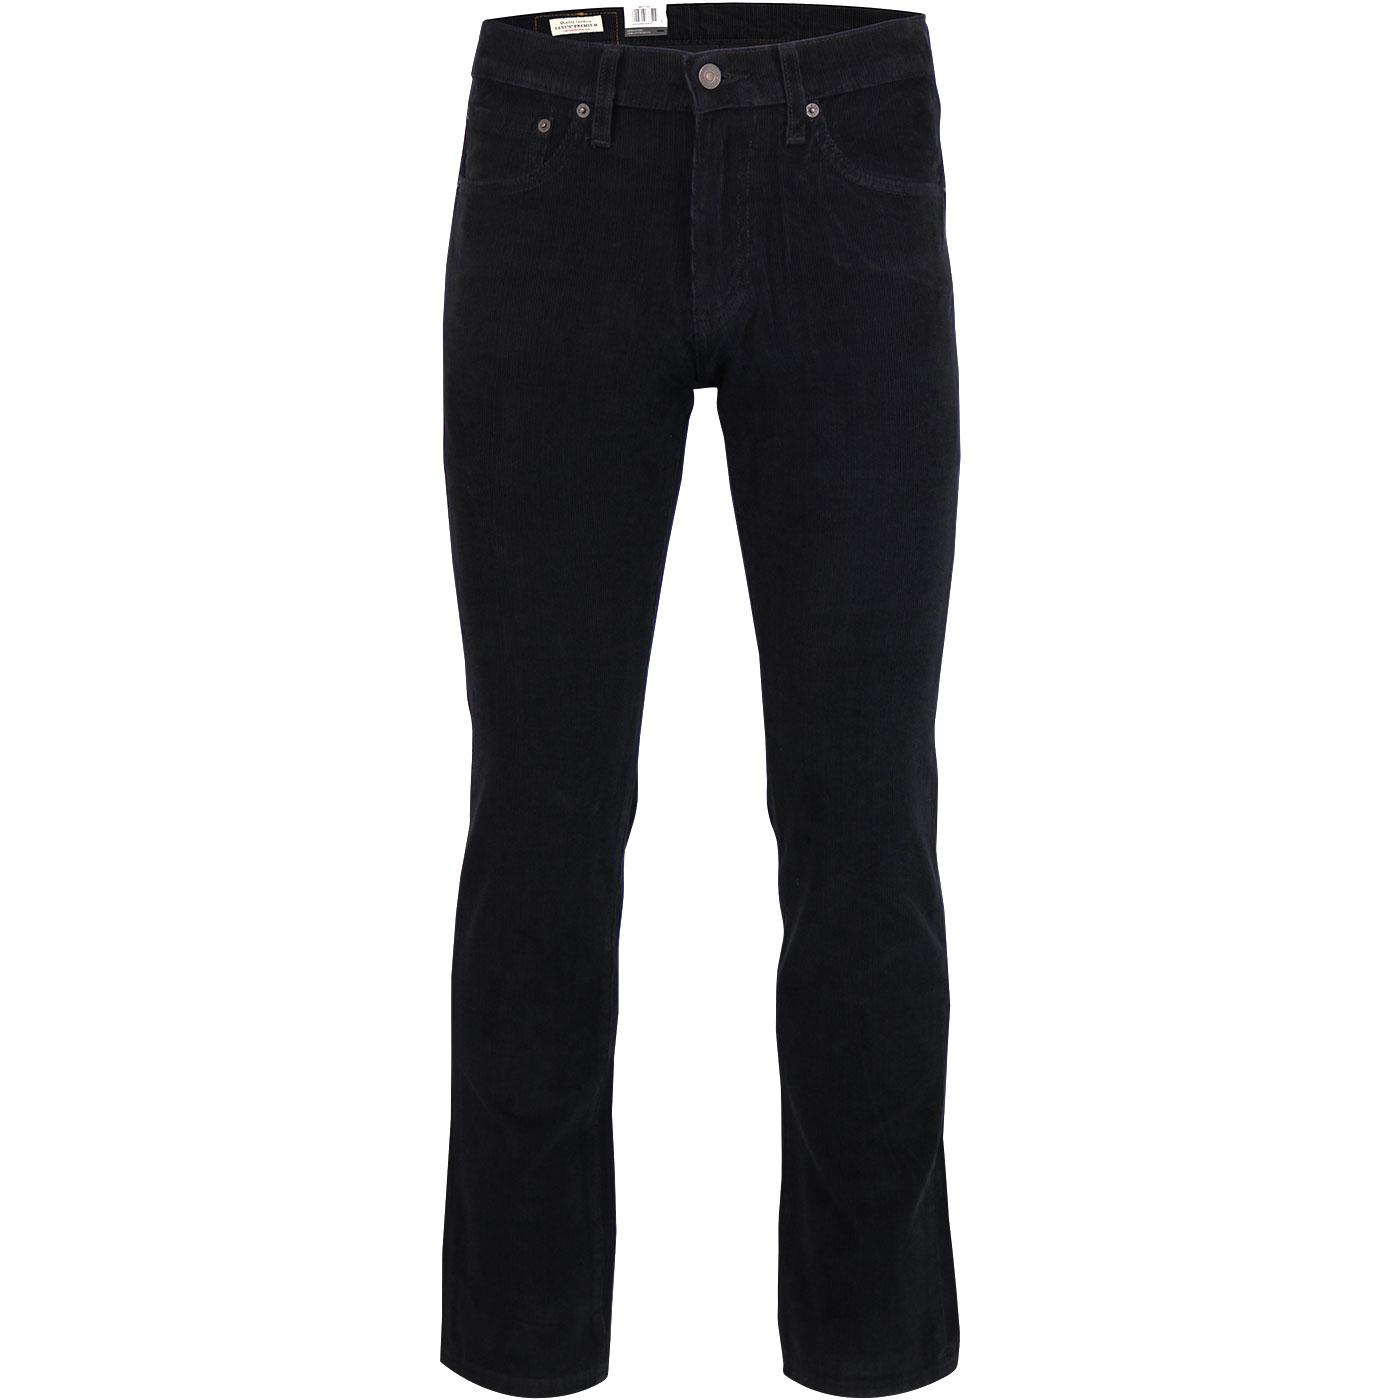 LEVI'S 511 Retro Men's Mod Slim Cord Jeans (Black)